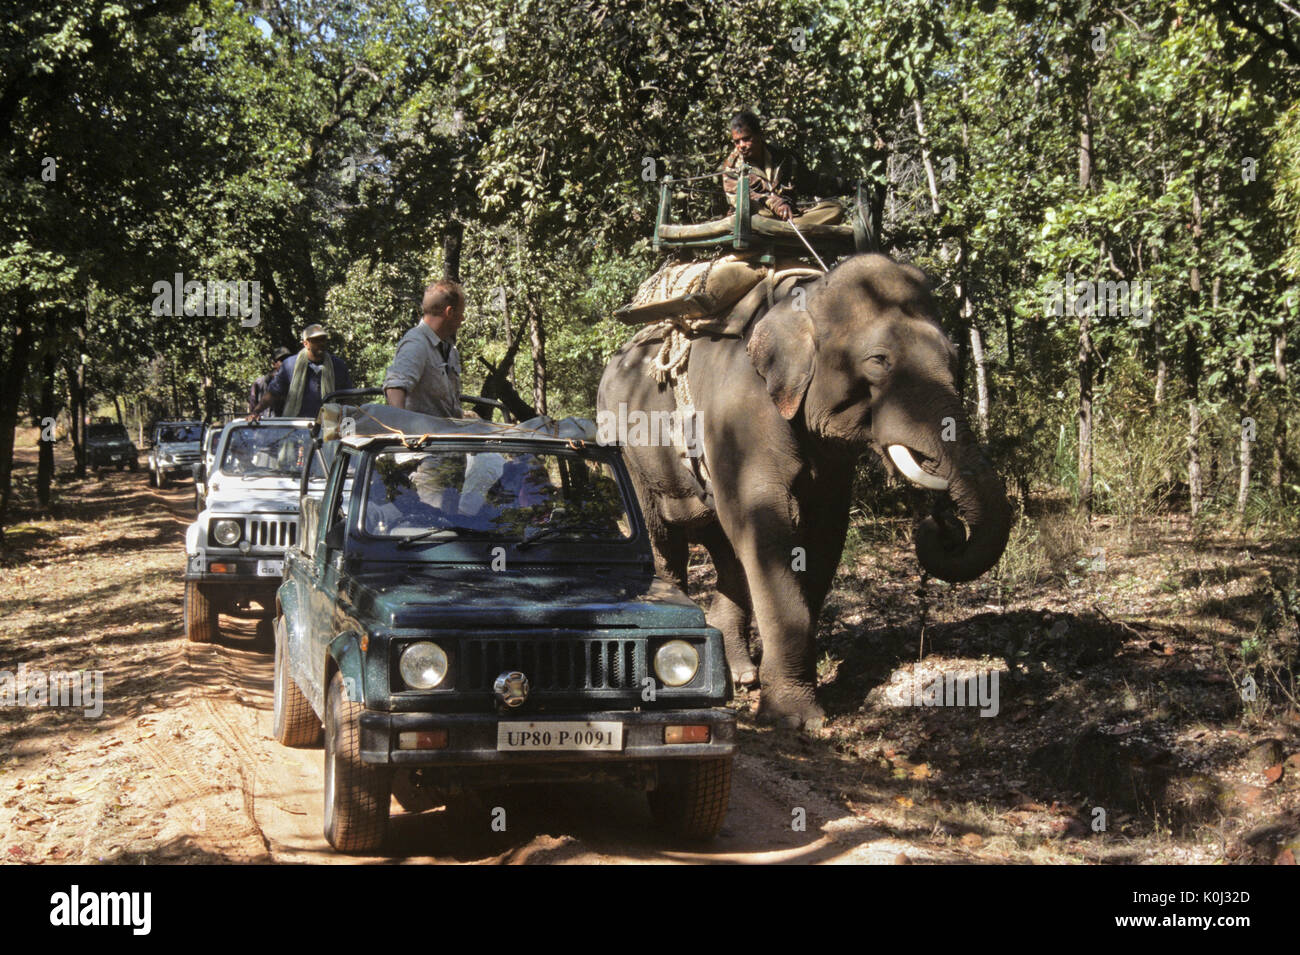 Auf Safari in Bandhavgarh Nationalpark, Madhya Pradesh, Indien Stockbild